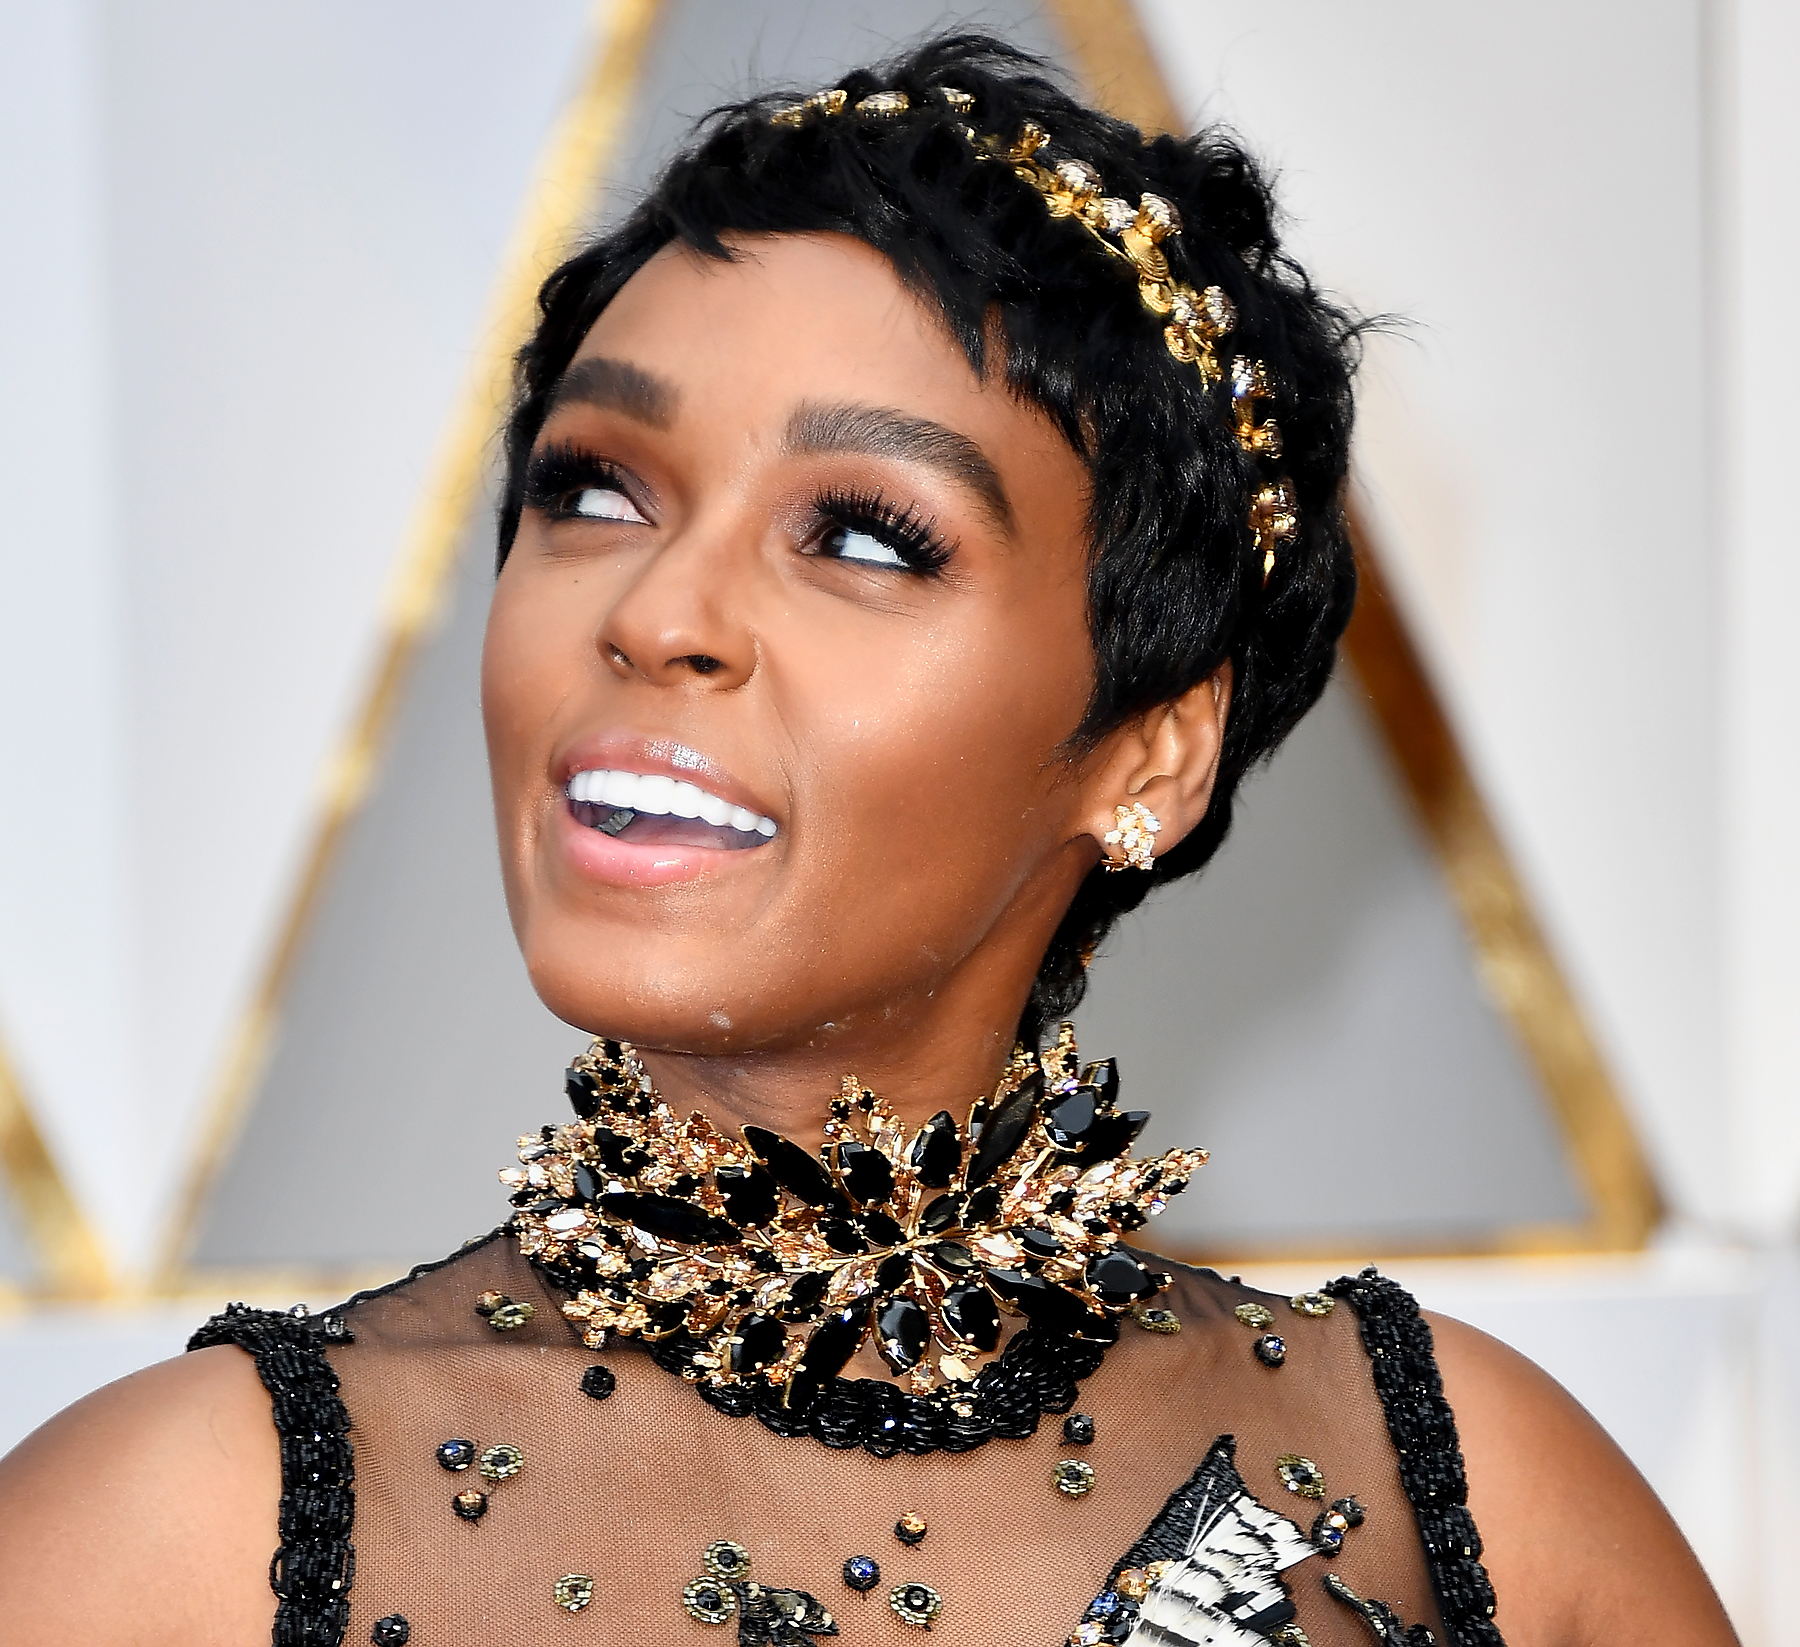 cali hair styles jeweled headbands see ruth negga and janelle monae s best 8719 | janelle monae zoom d99127a2 1c24 4239 8719 2886b191c550